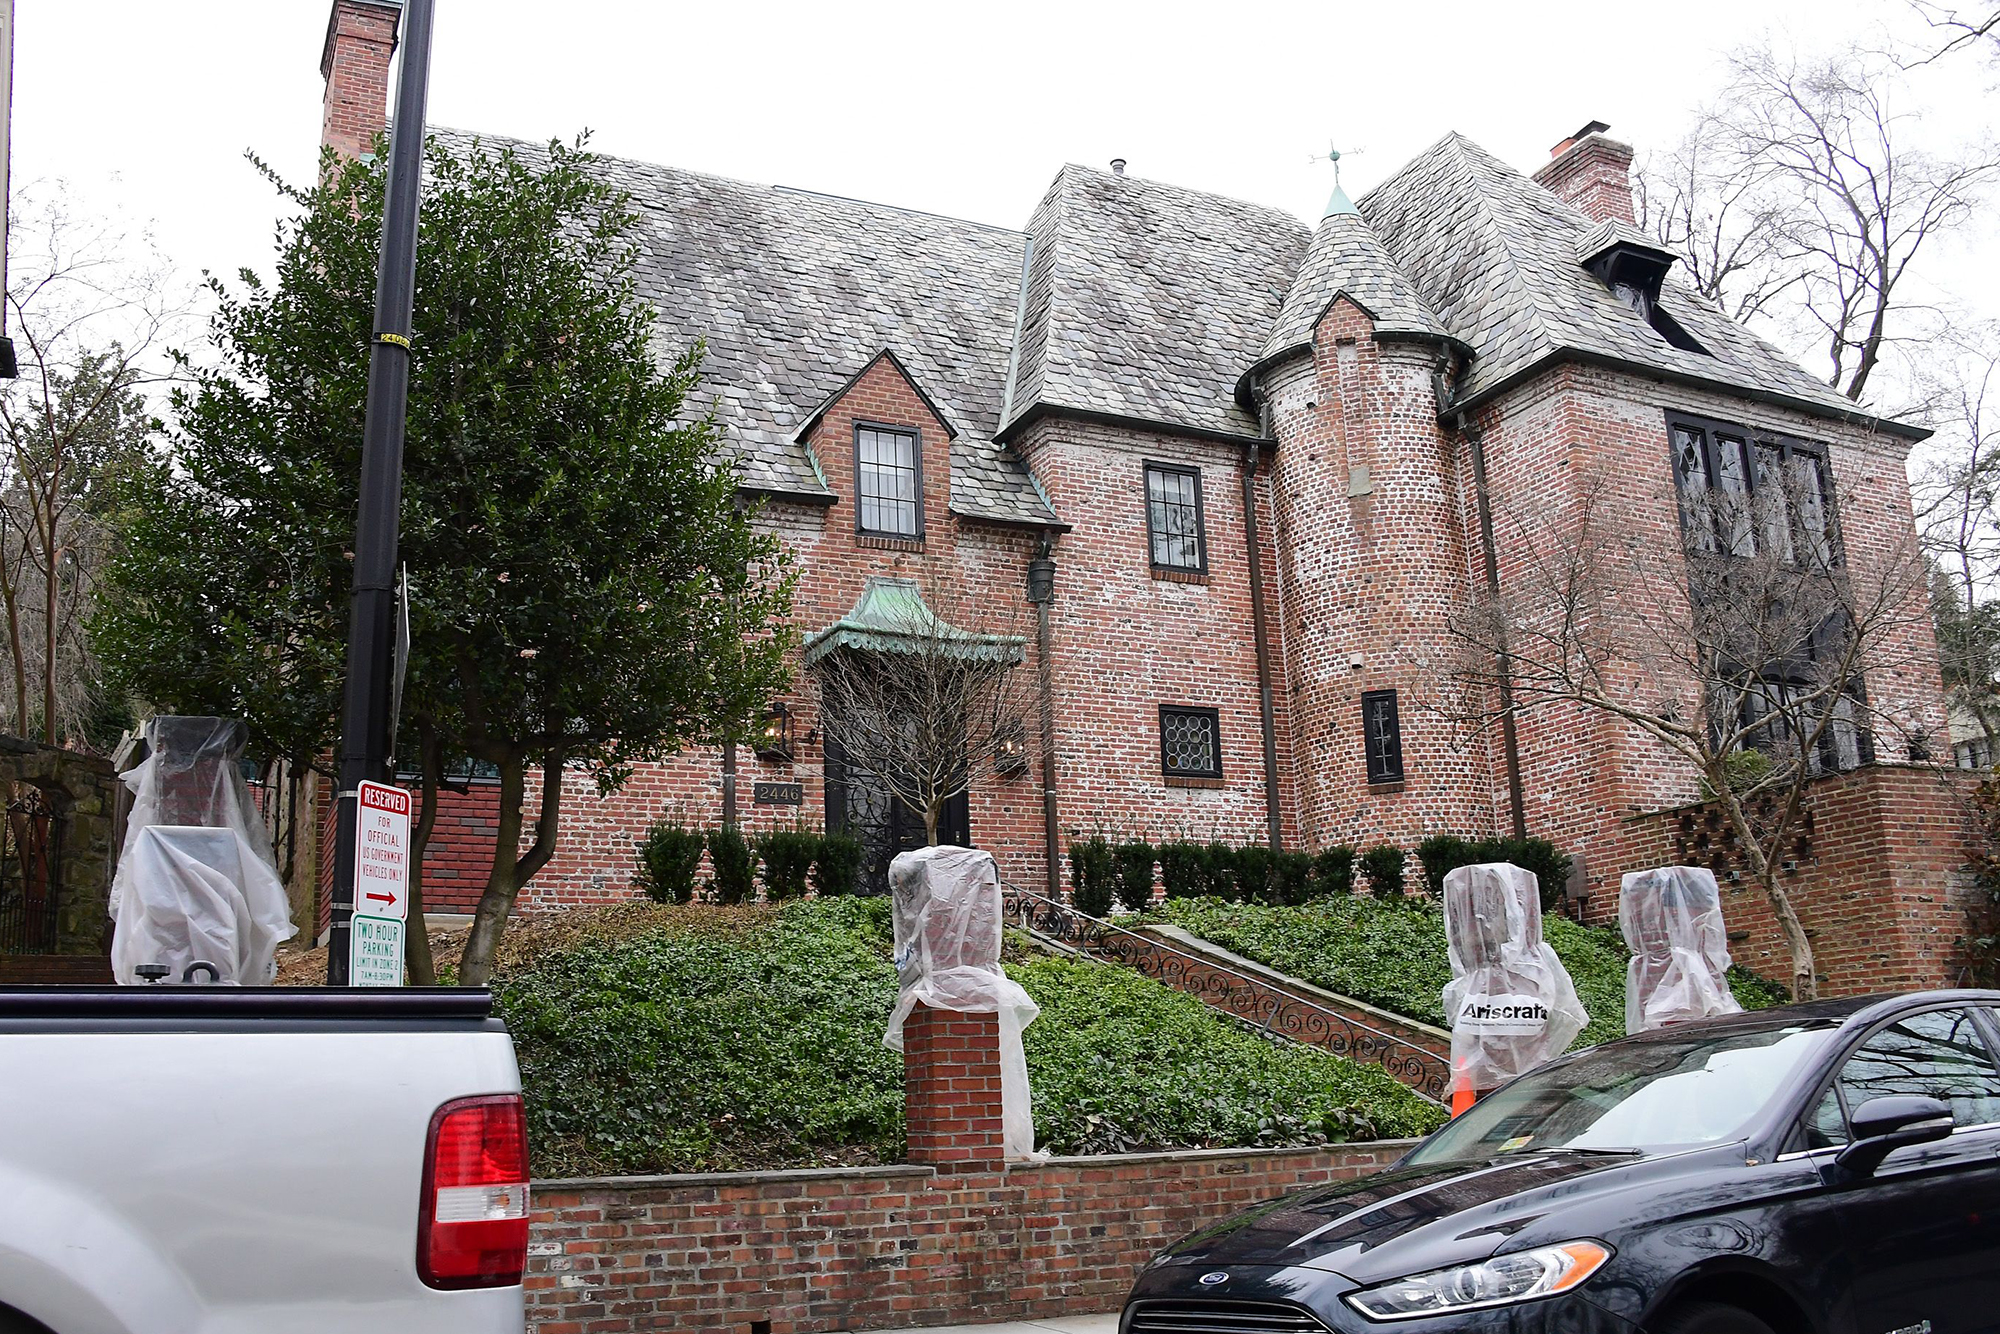 Trump Lies About 10 Foot Wall Around Obama S Home There Isn T One